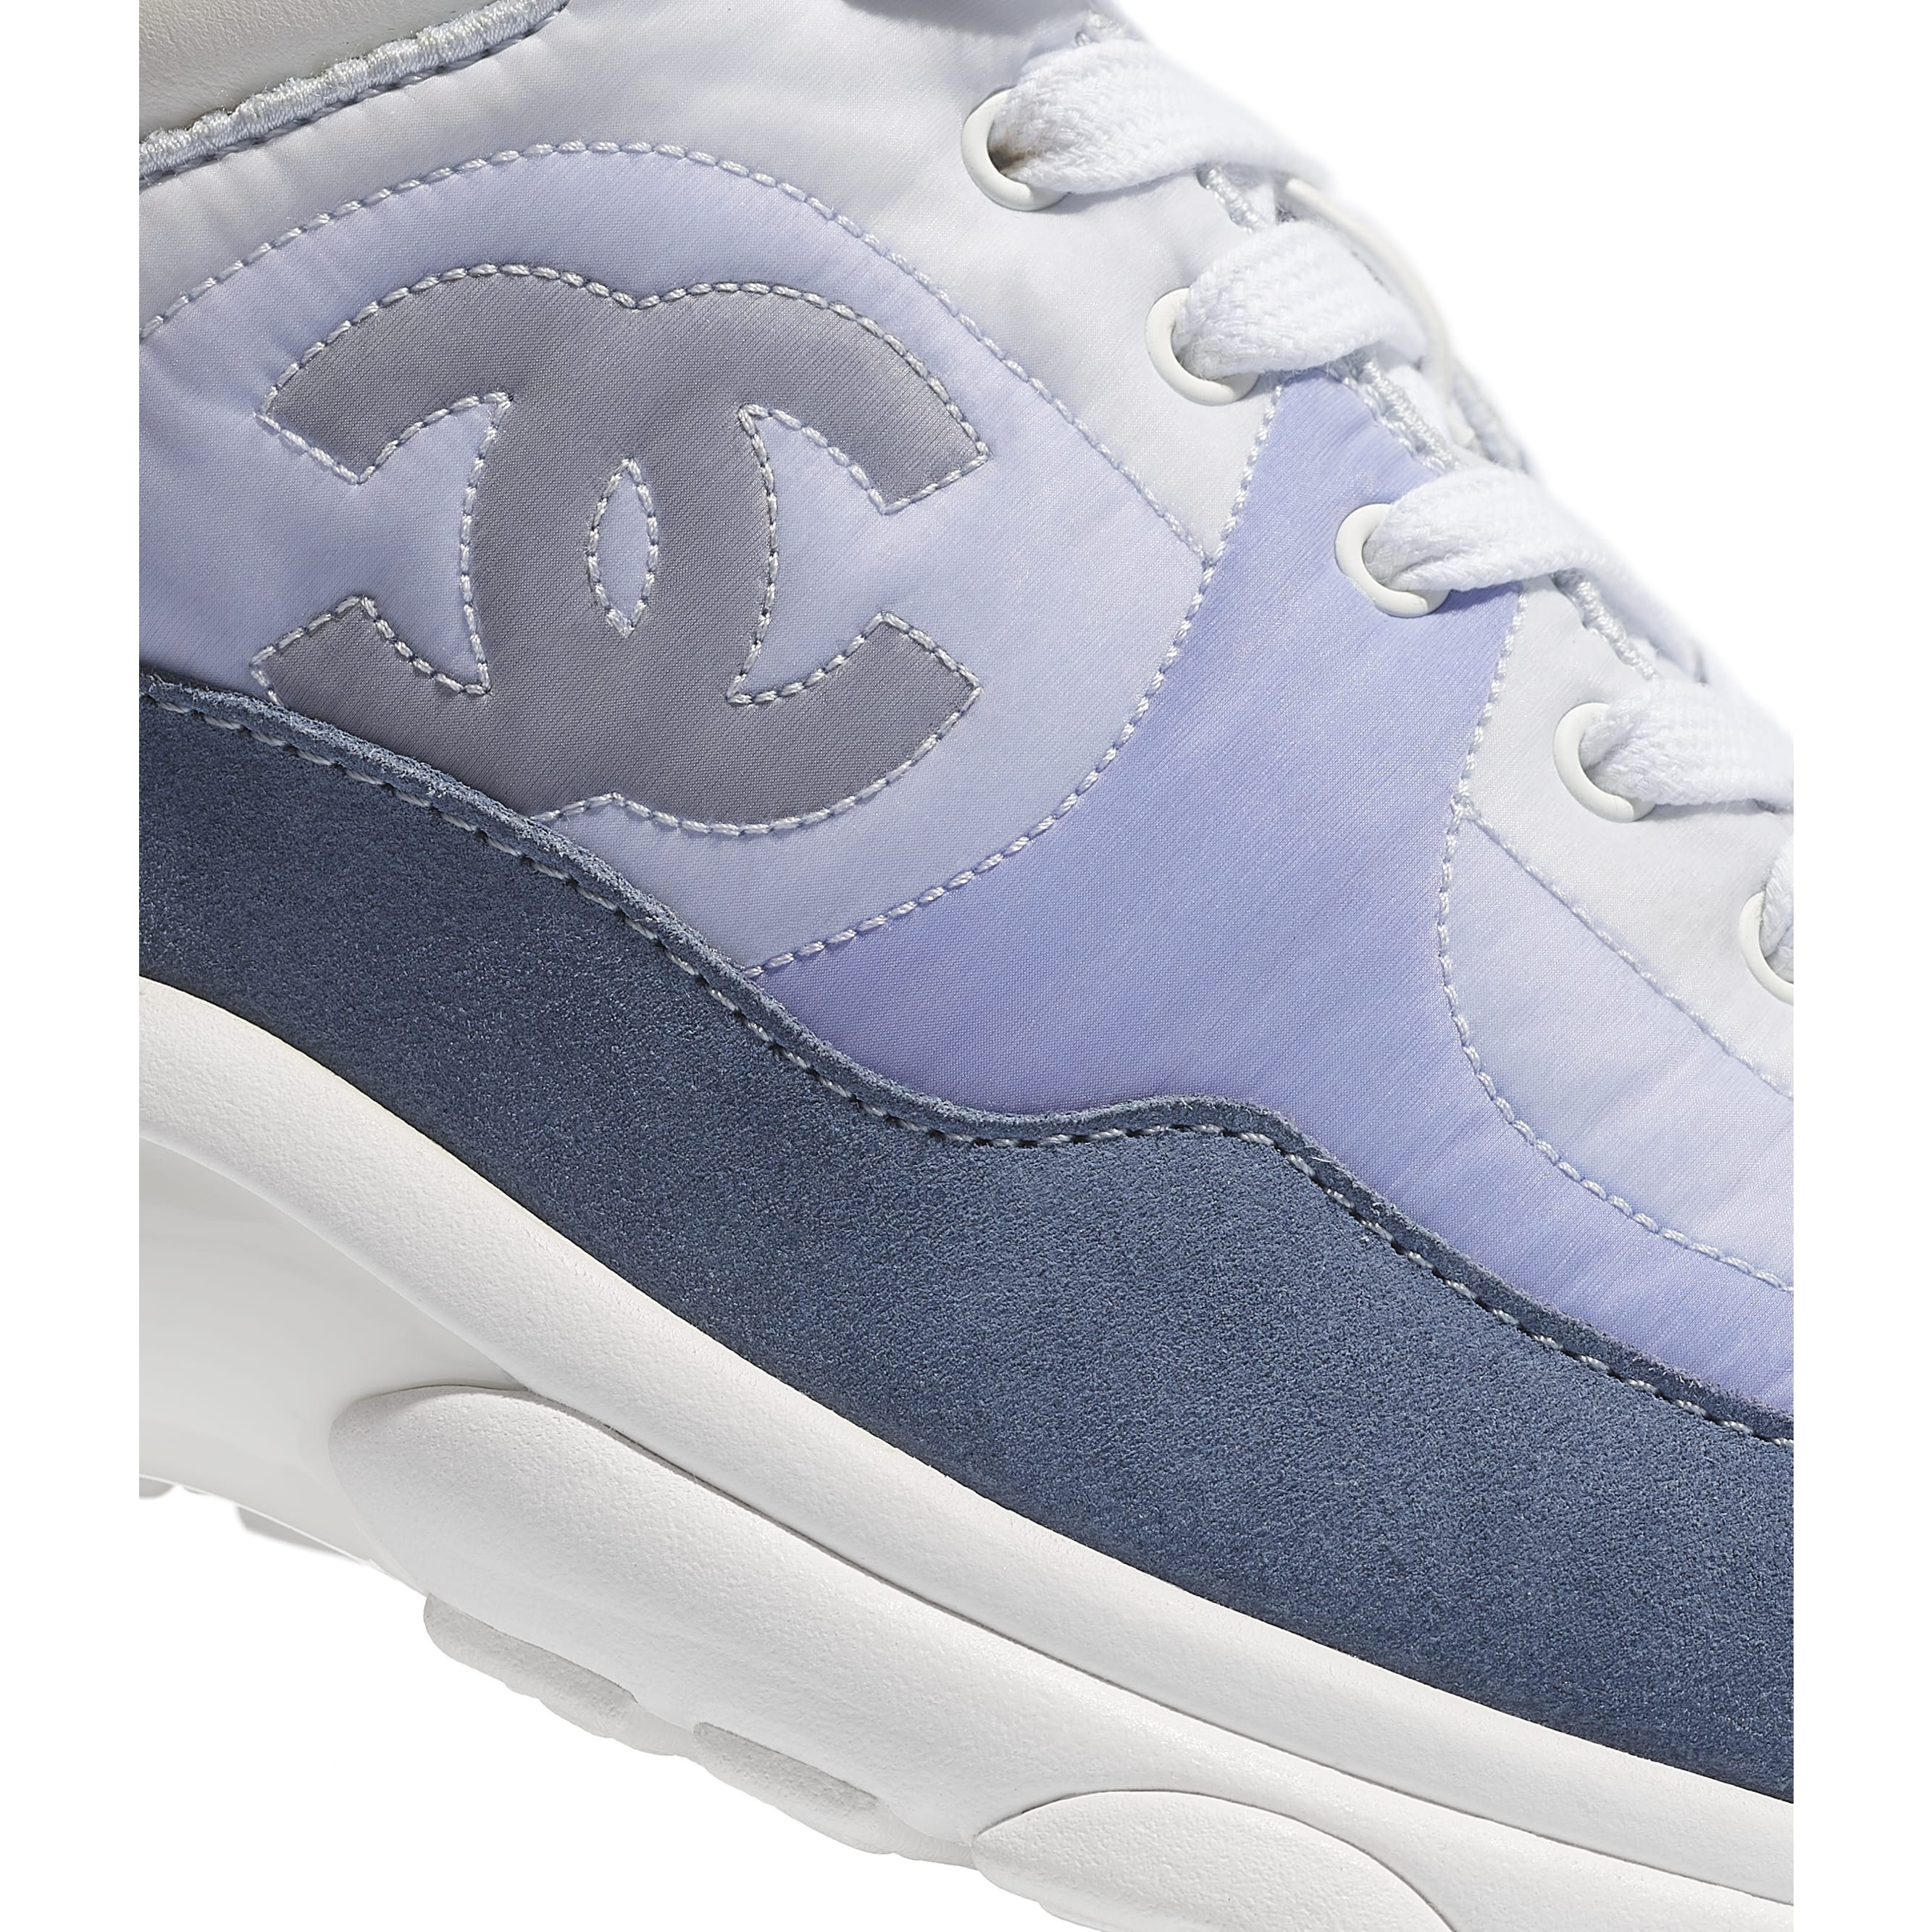 Trainers - Sky Blue - Suede Calfskin & Nylon - CHANEL - Extra view - see standard sized version